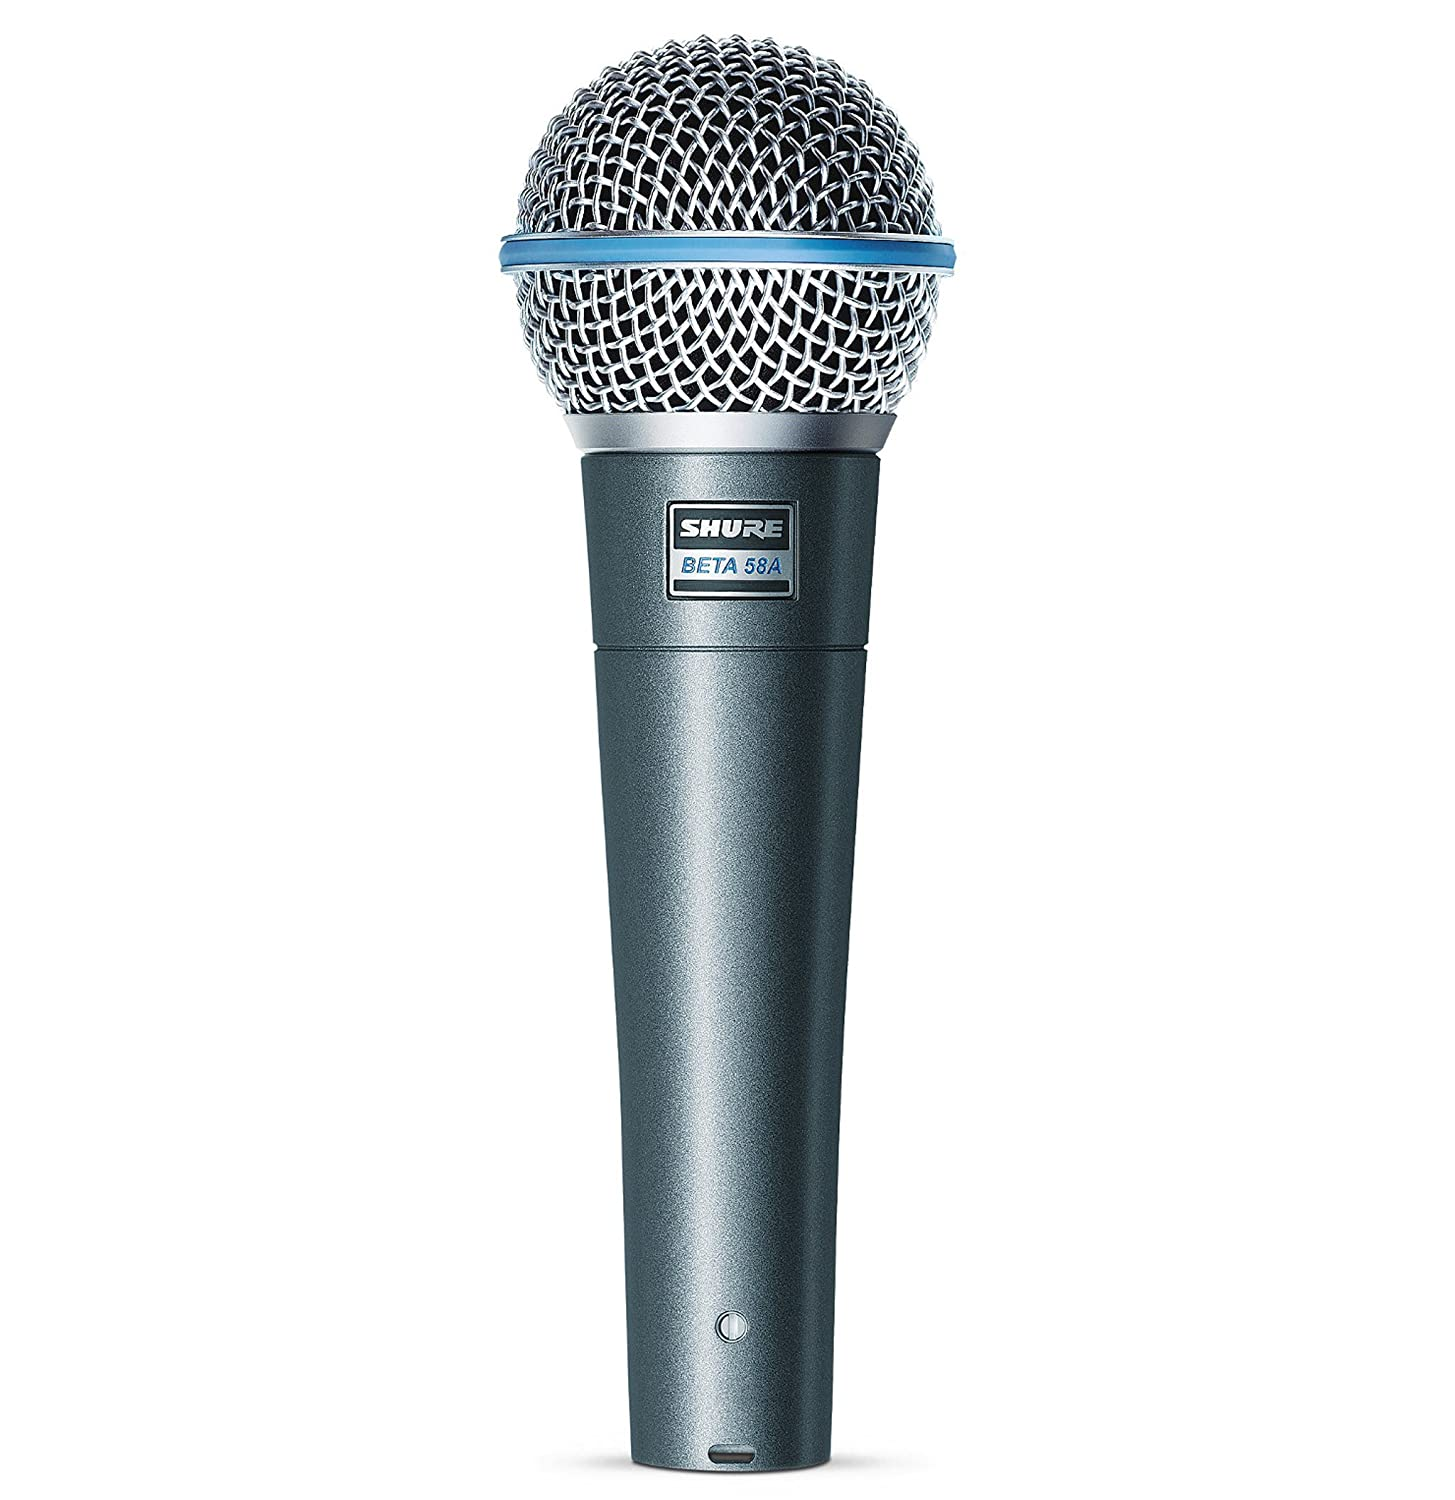 Amazon Shure BETA 58A Supercardioid Dynamic Microphone With High Output Neodymium Element For Vocal Instrument Applications Musical Instruments